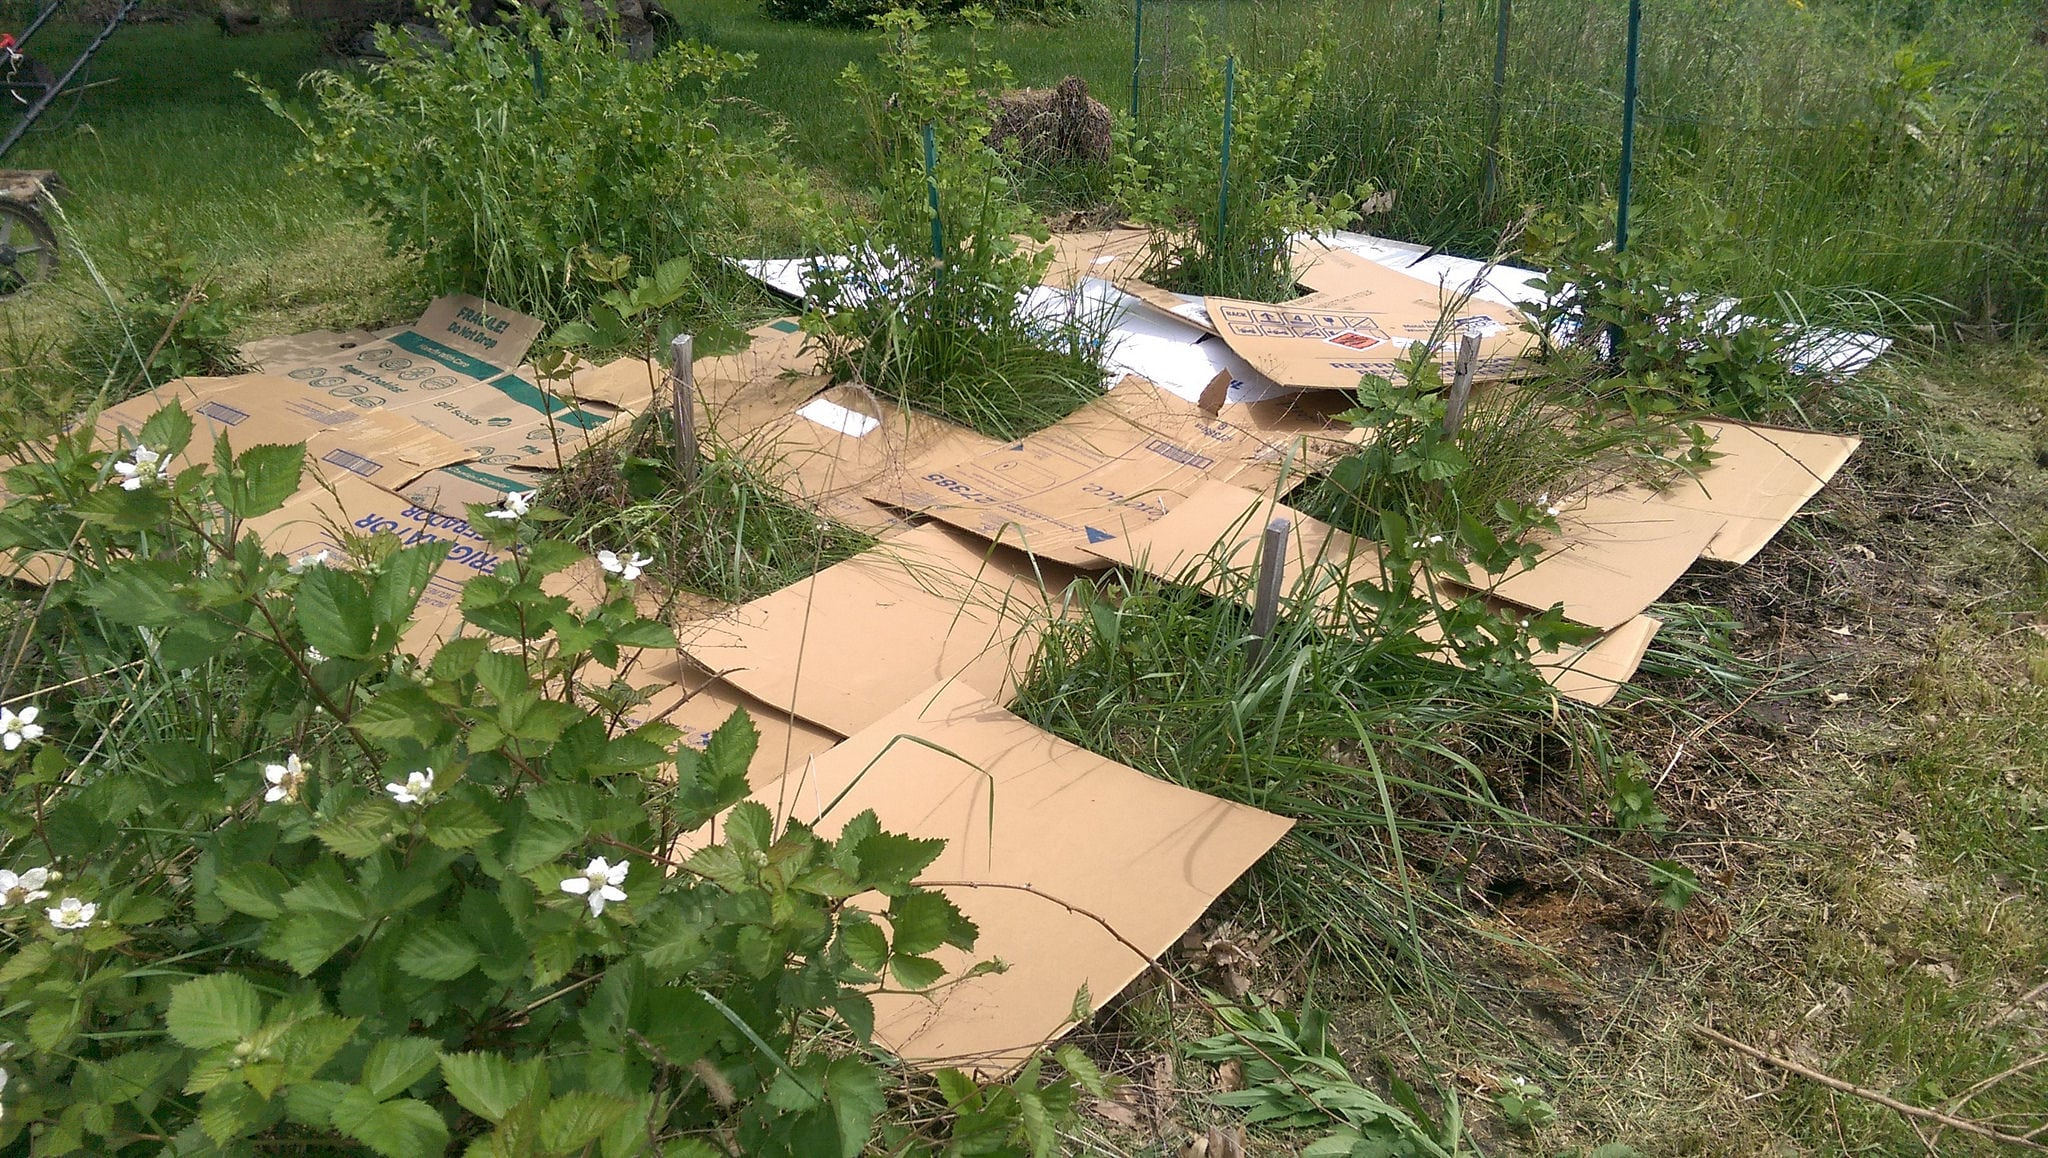 Garden Upcycling With Cardboard: How To Use Cardboard In The Garden